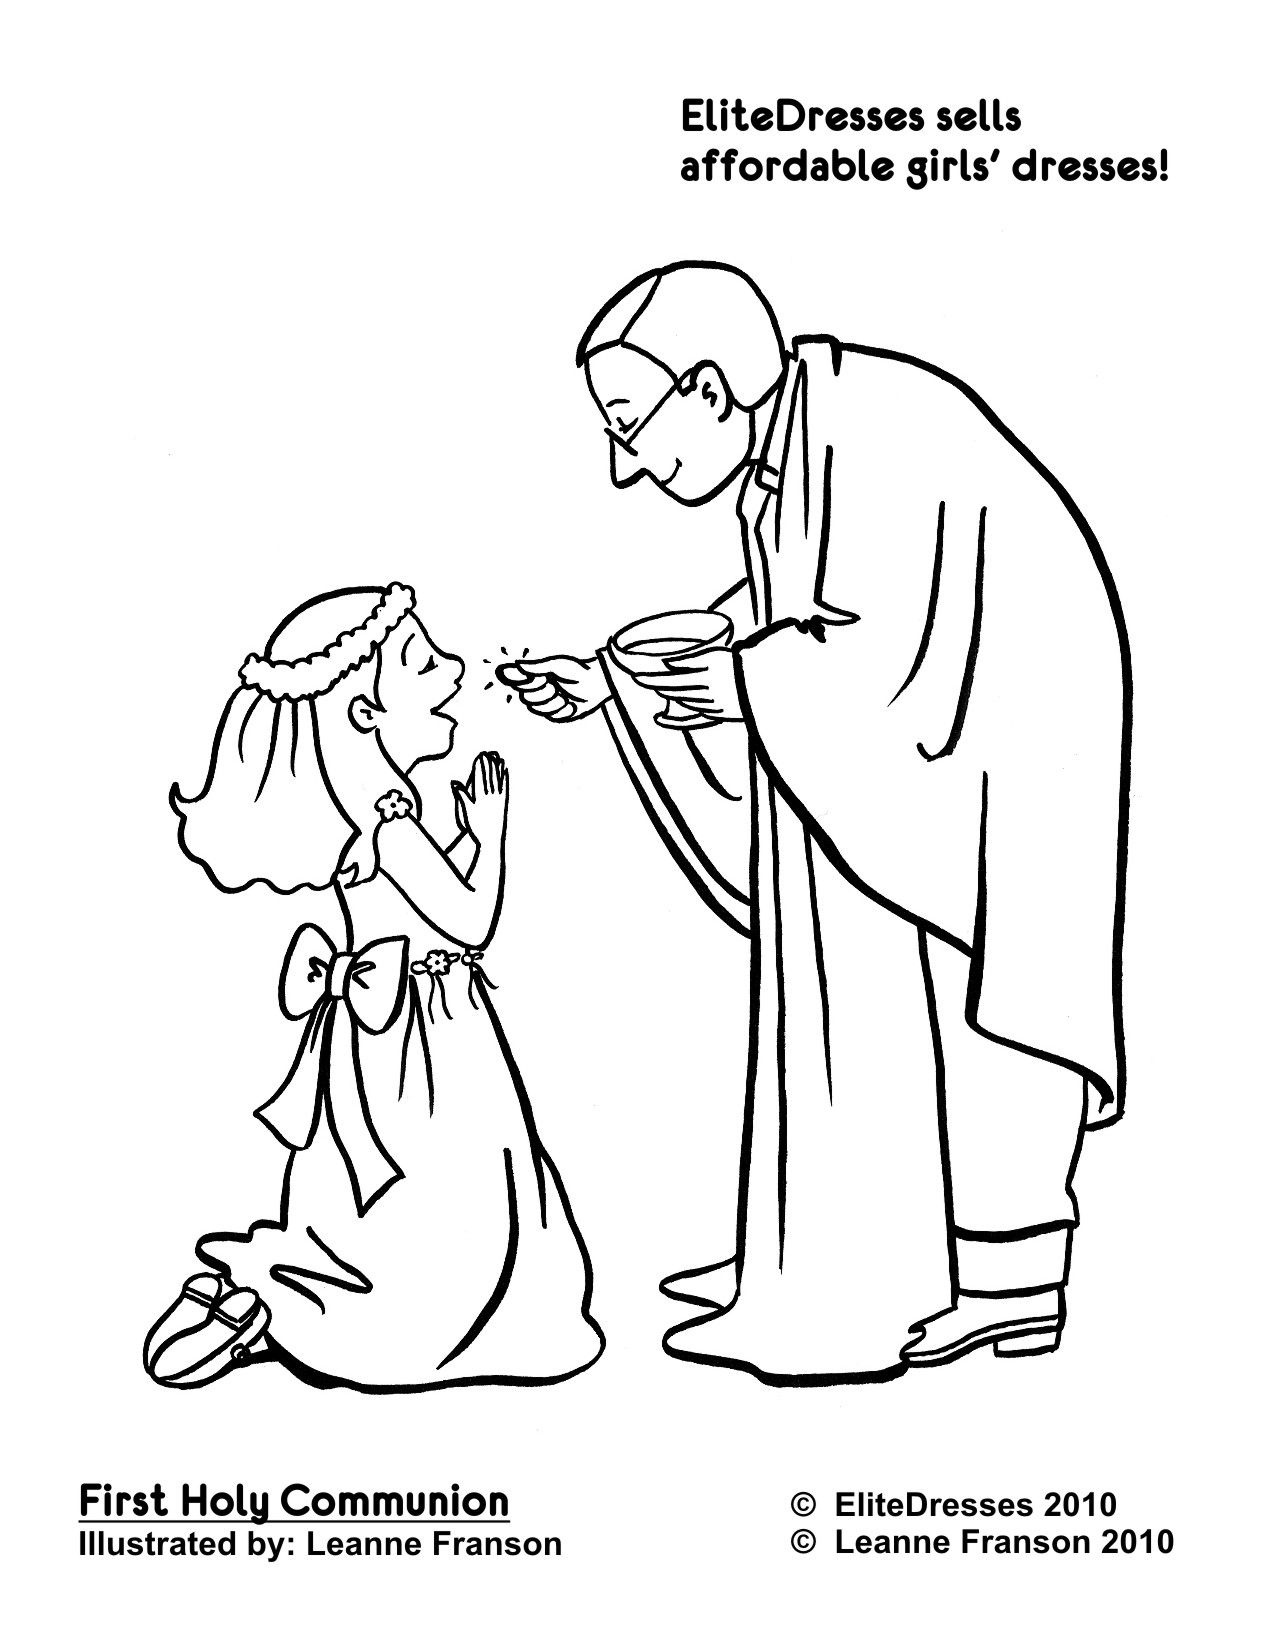 First Communion Coloring Pages Free | Free Coloring Pages For Kids - Free Catholic Coloring Pages Printables